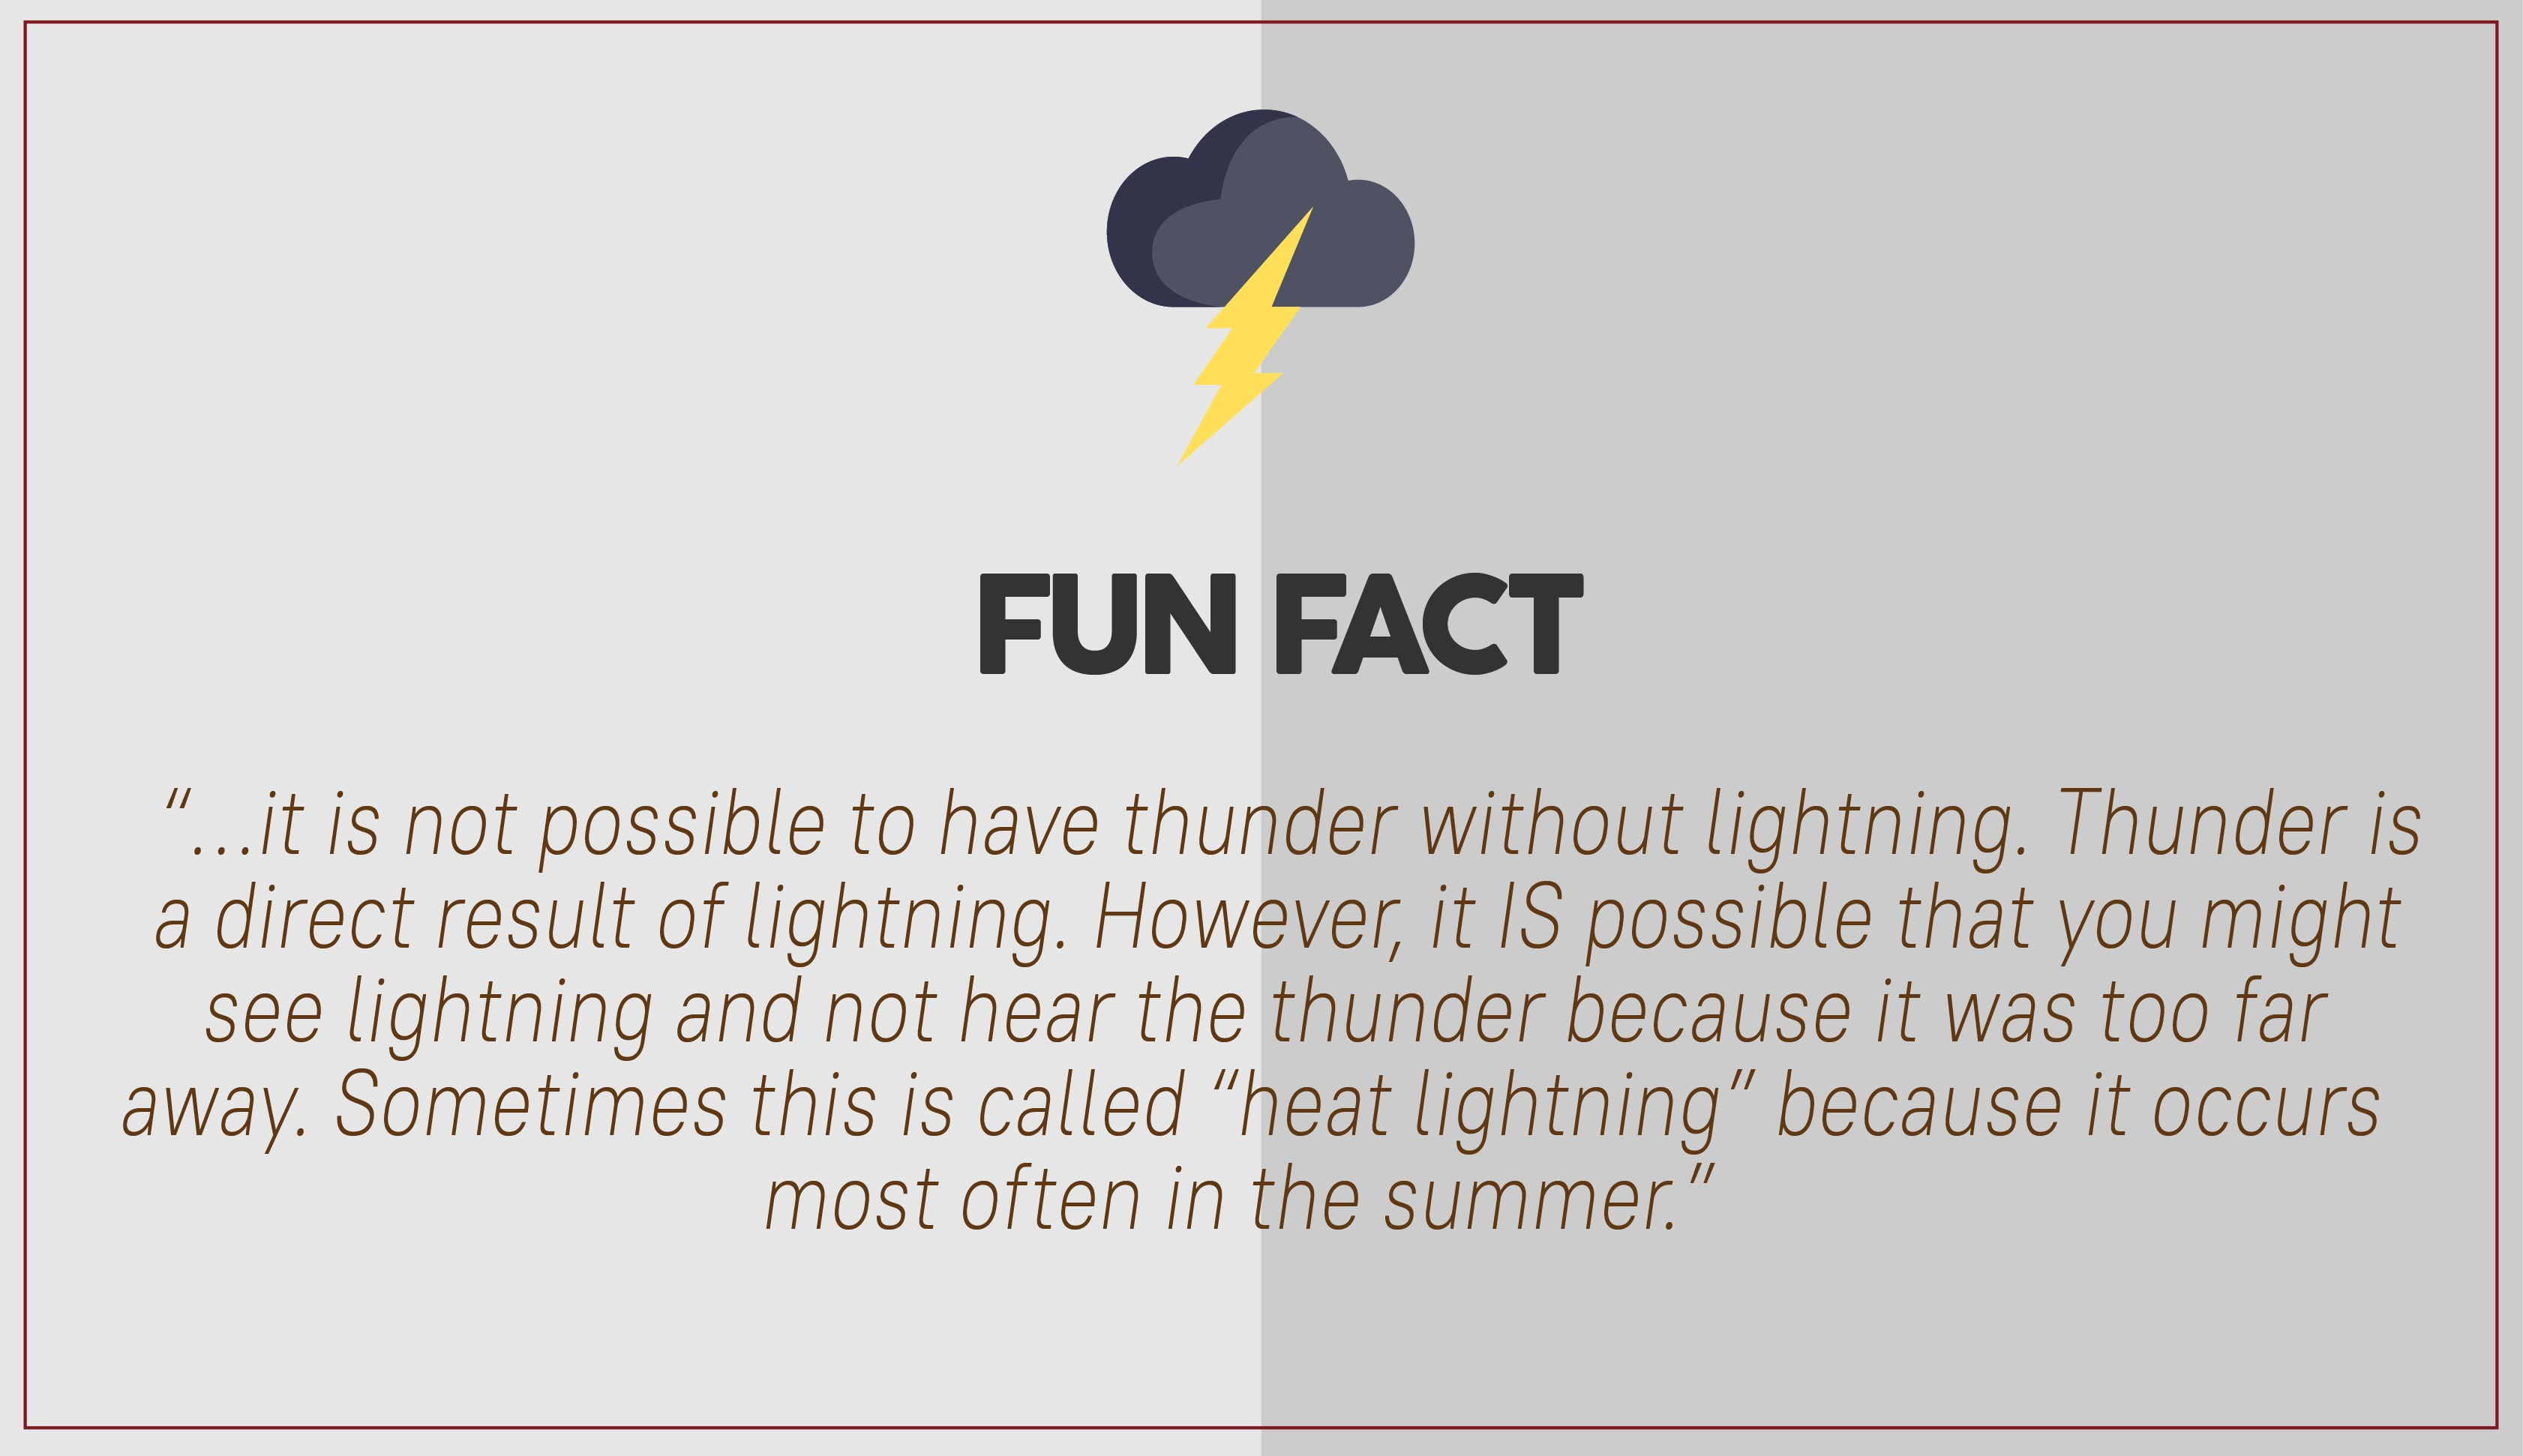 Thunder fun fact